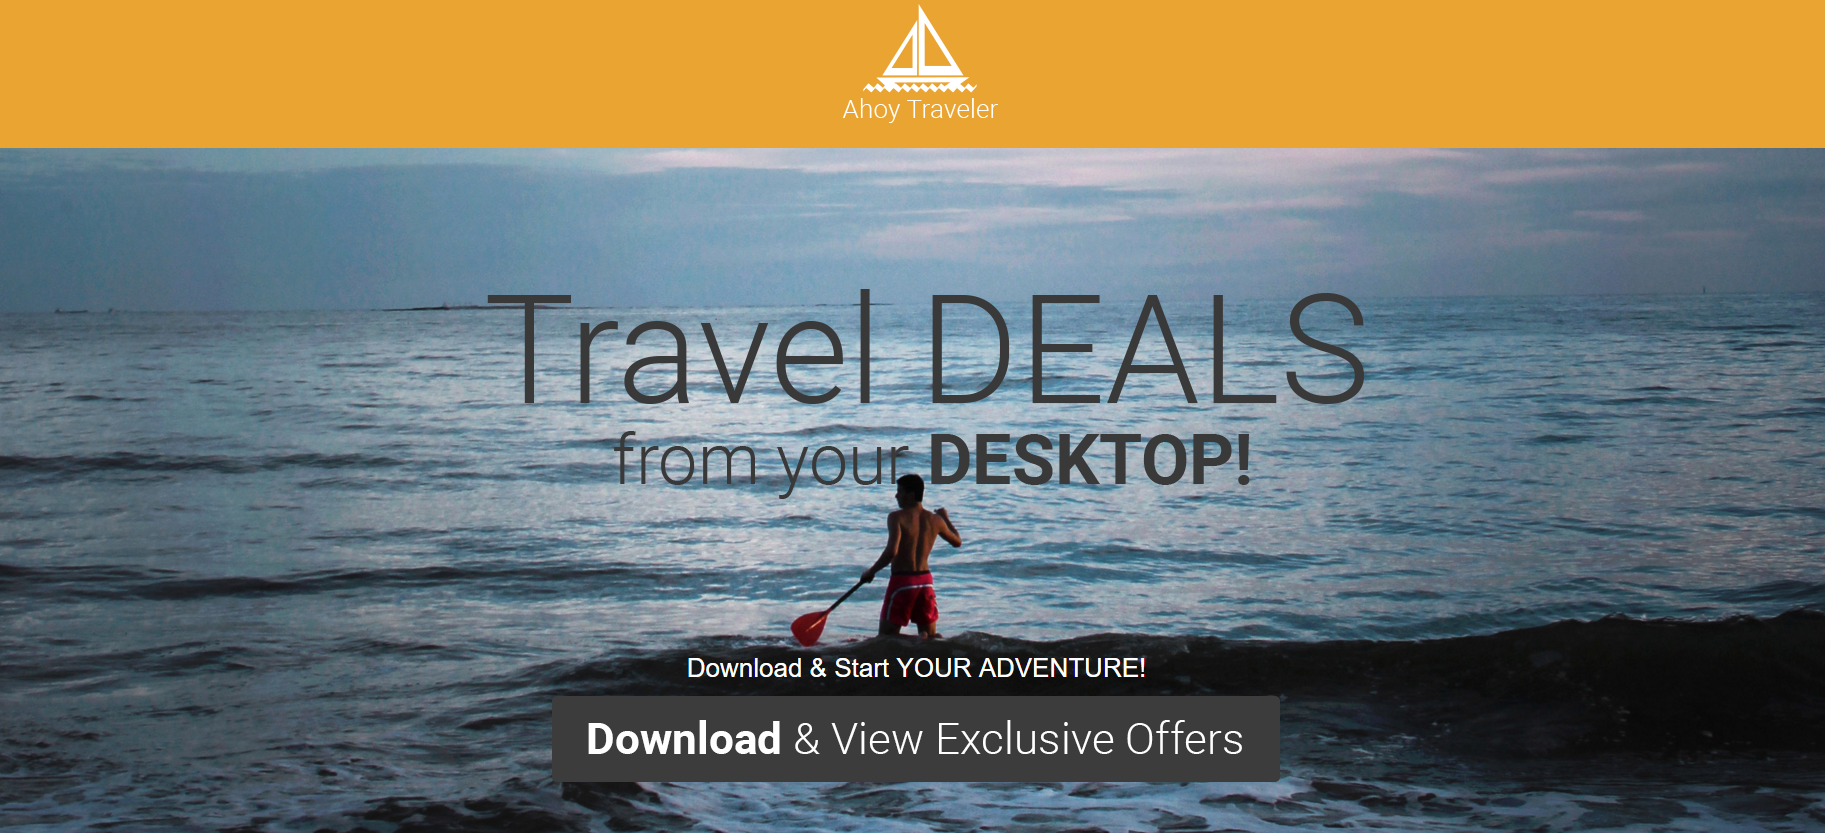 ads by Ahoy Traveler